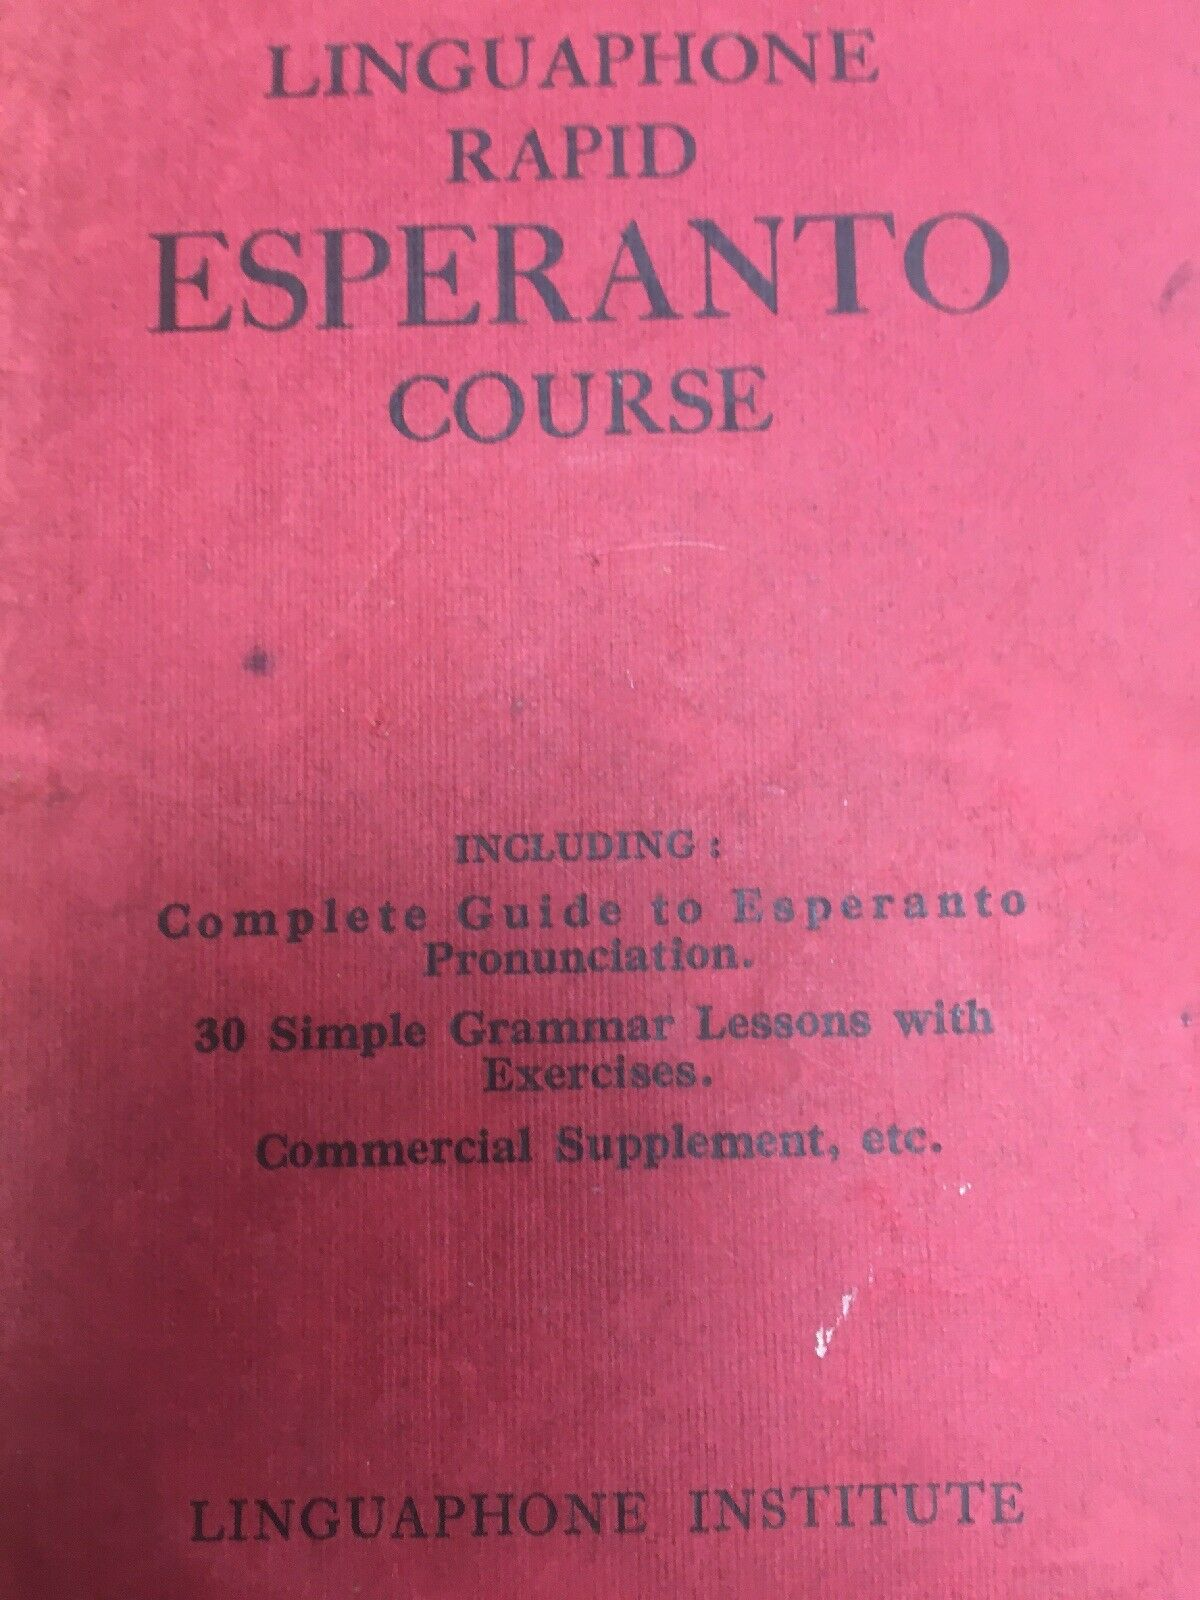 Linguaphone Rapid Esperanto 1.jpg